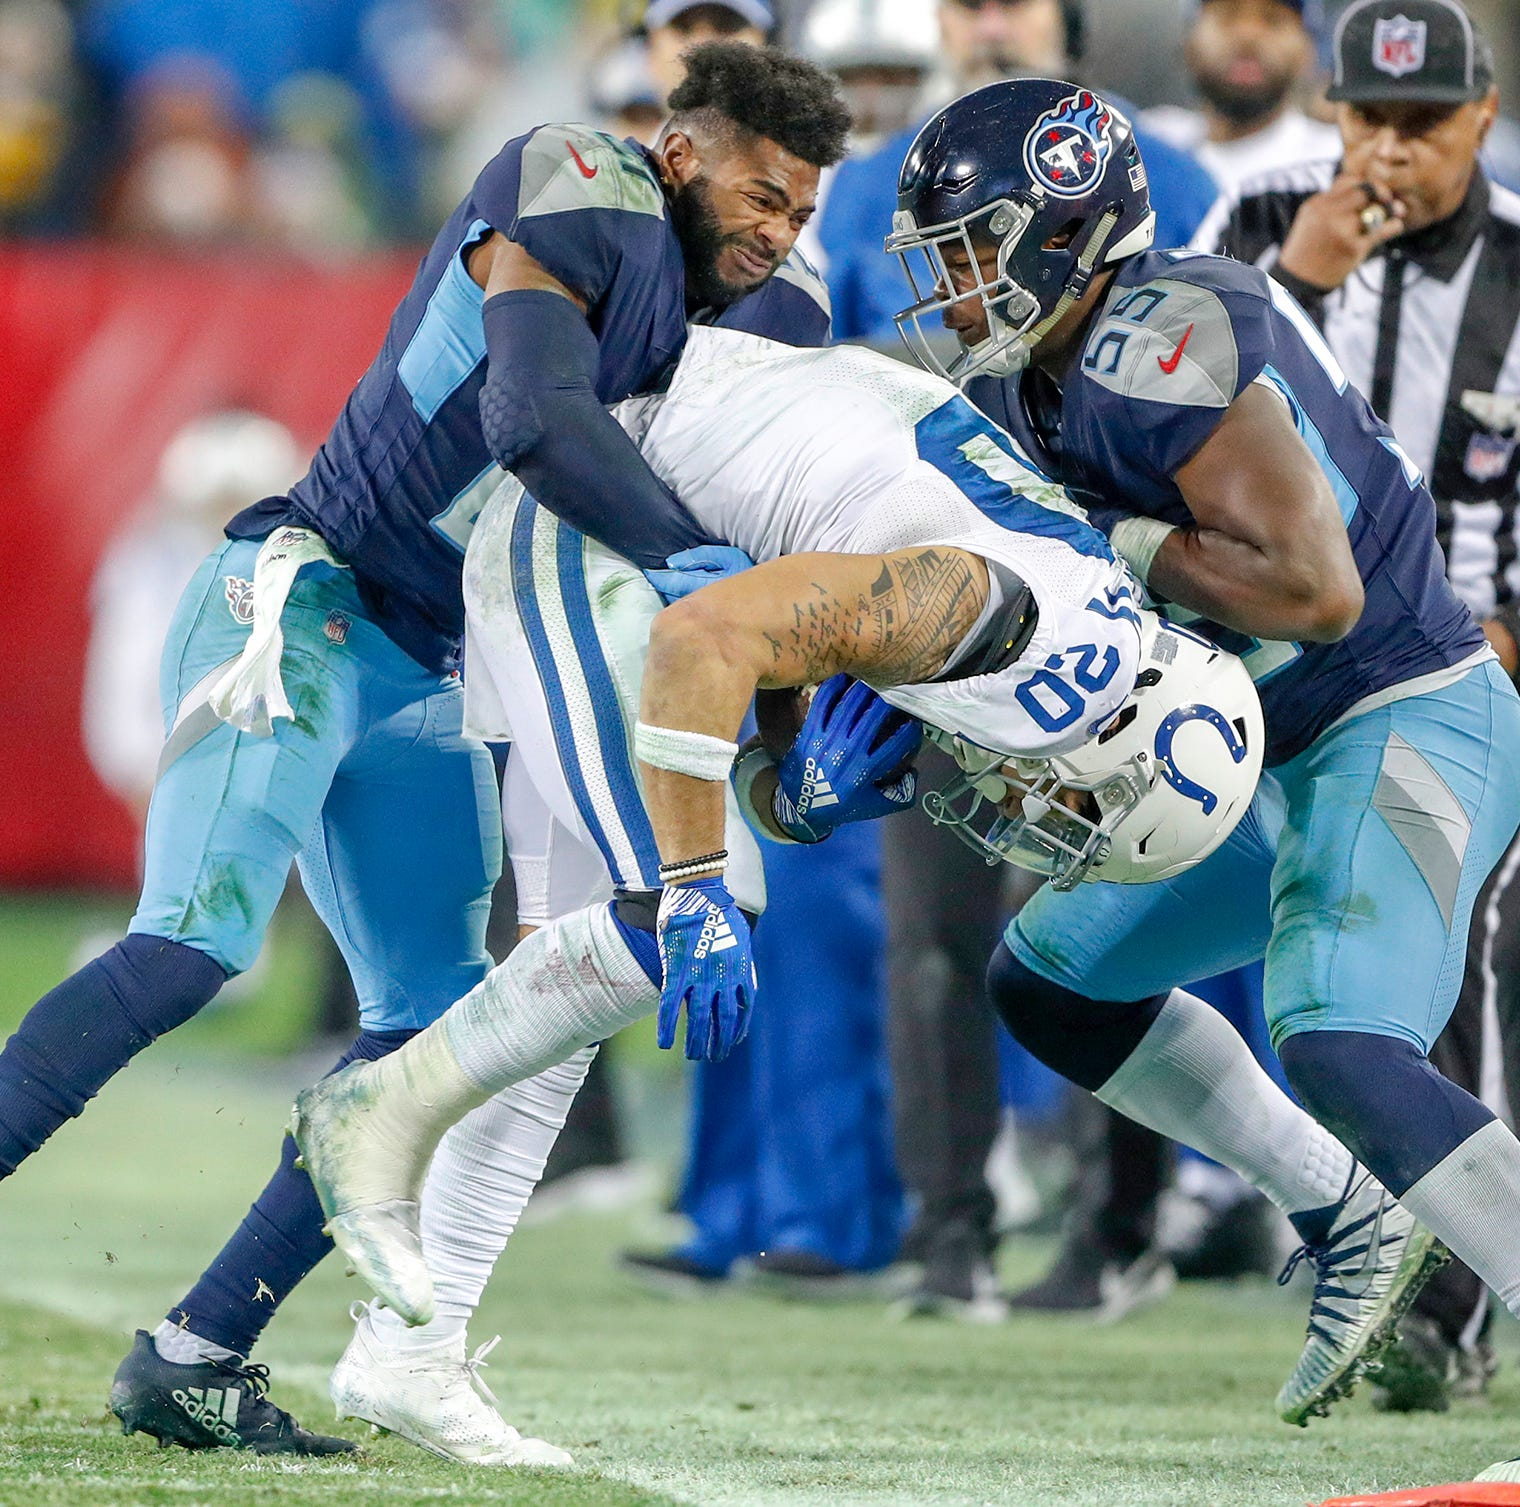 Doyel: Colts beat Titans, reach playoffs but feel they haven't done anything yet